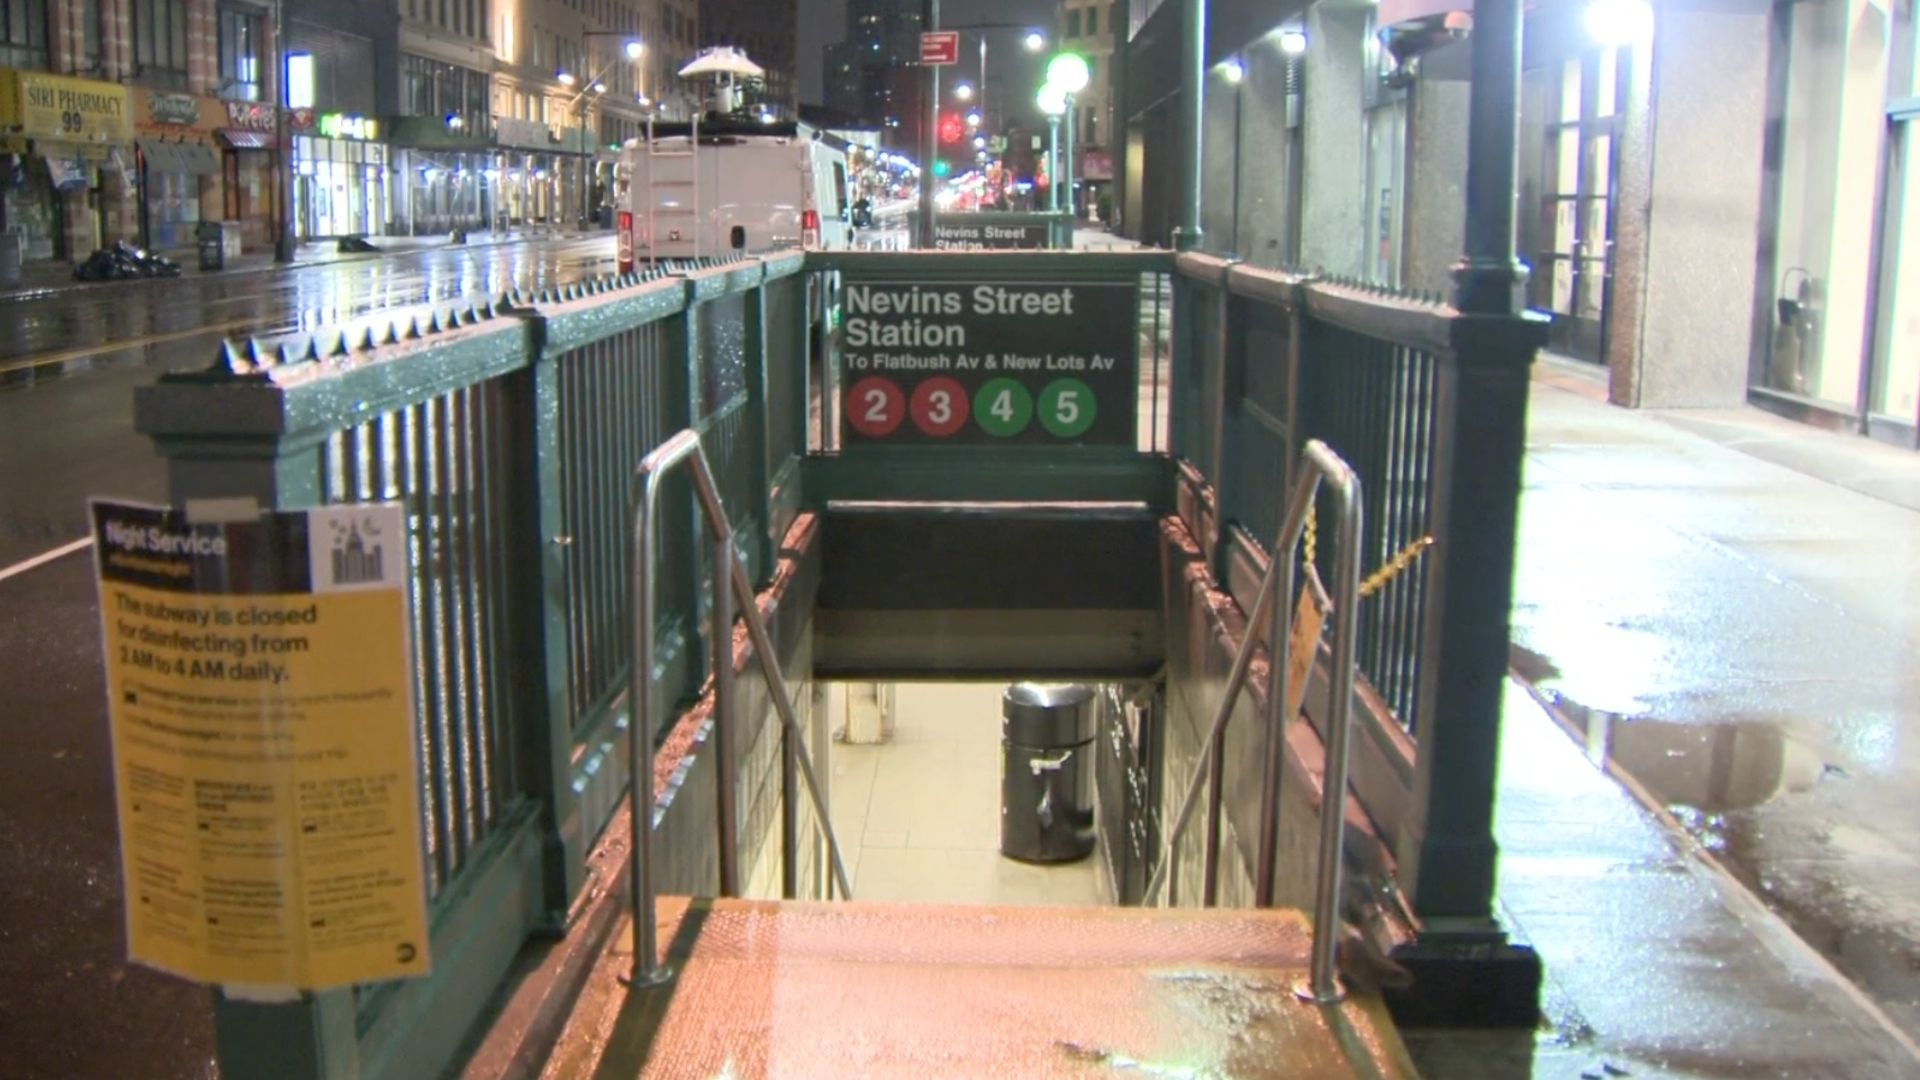 The Nevins Street subway station in Downtown Brooklyn on March 19, 2021. (PIX11 News)